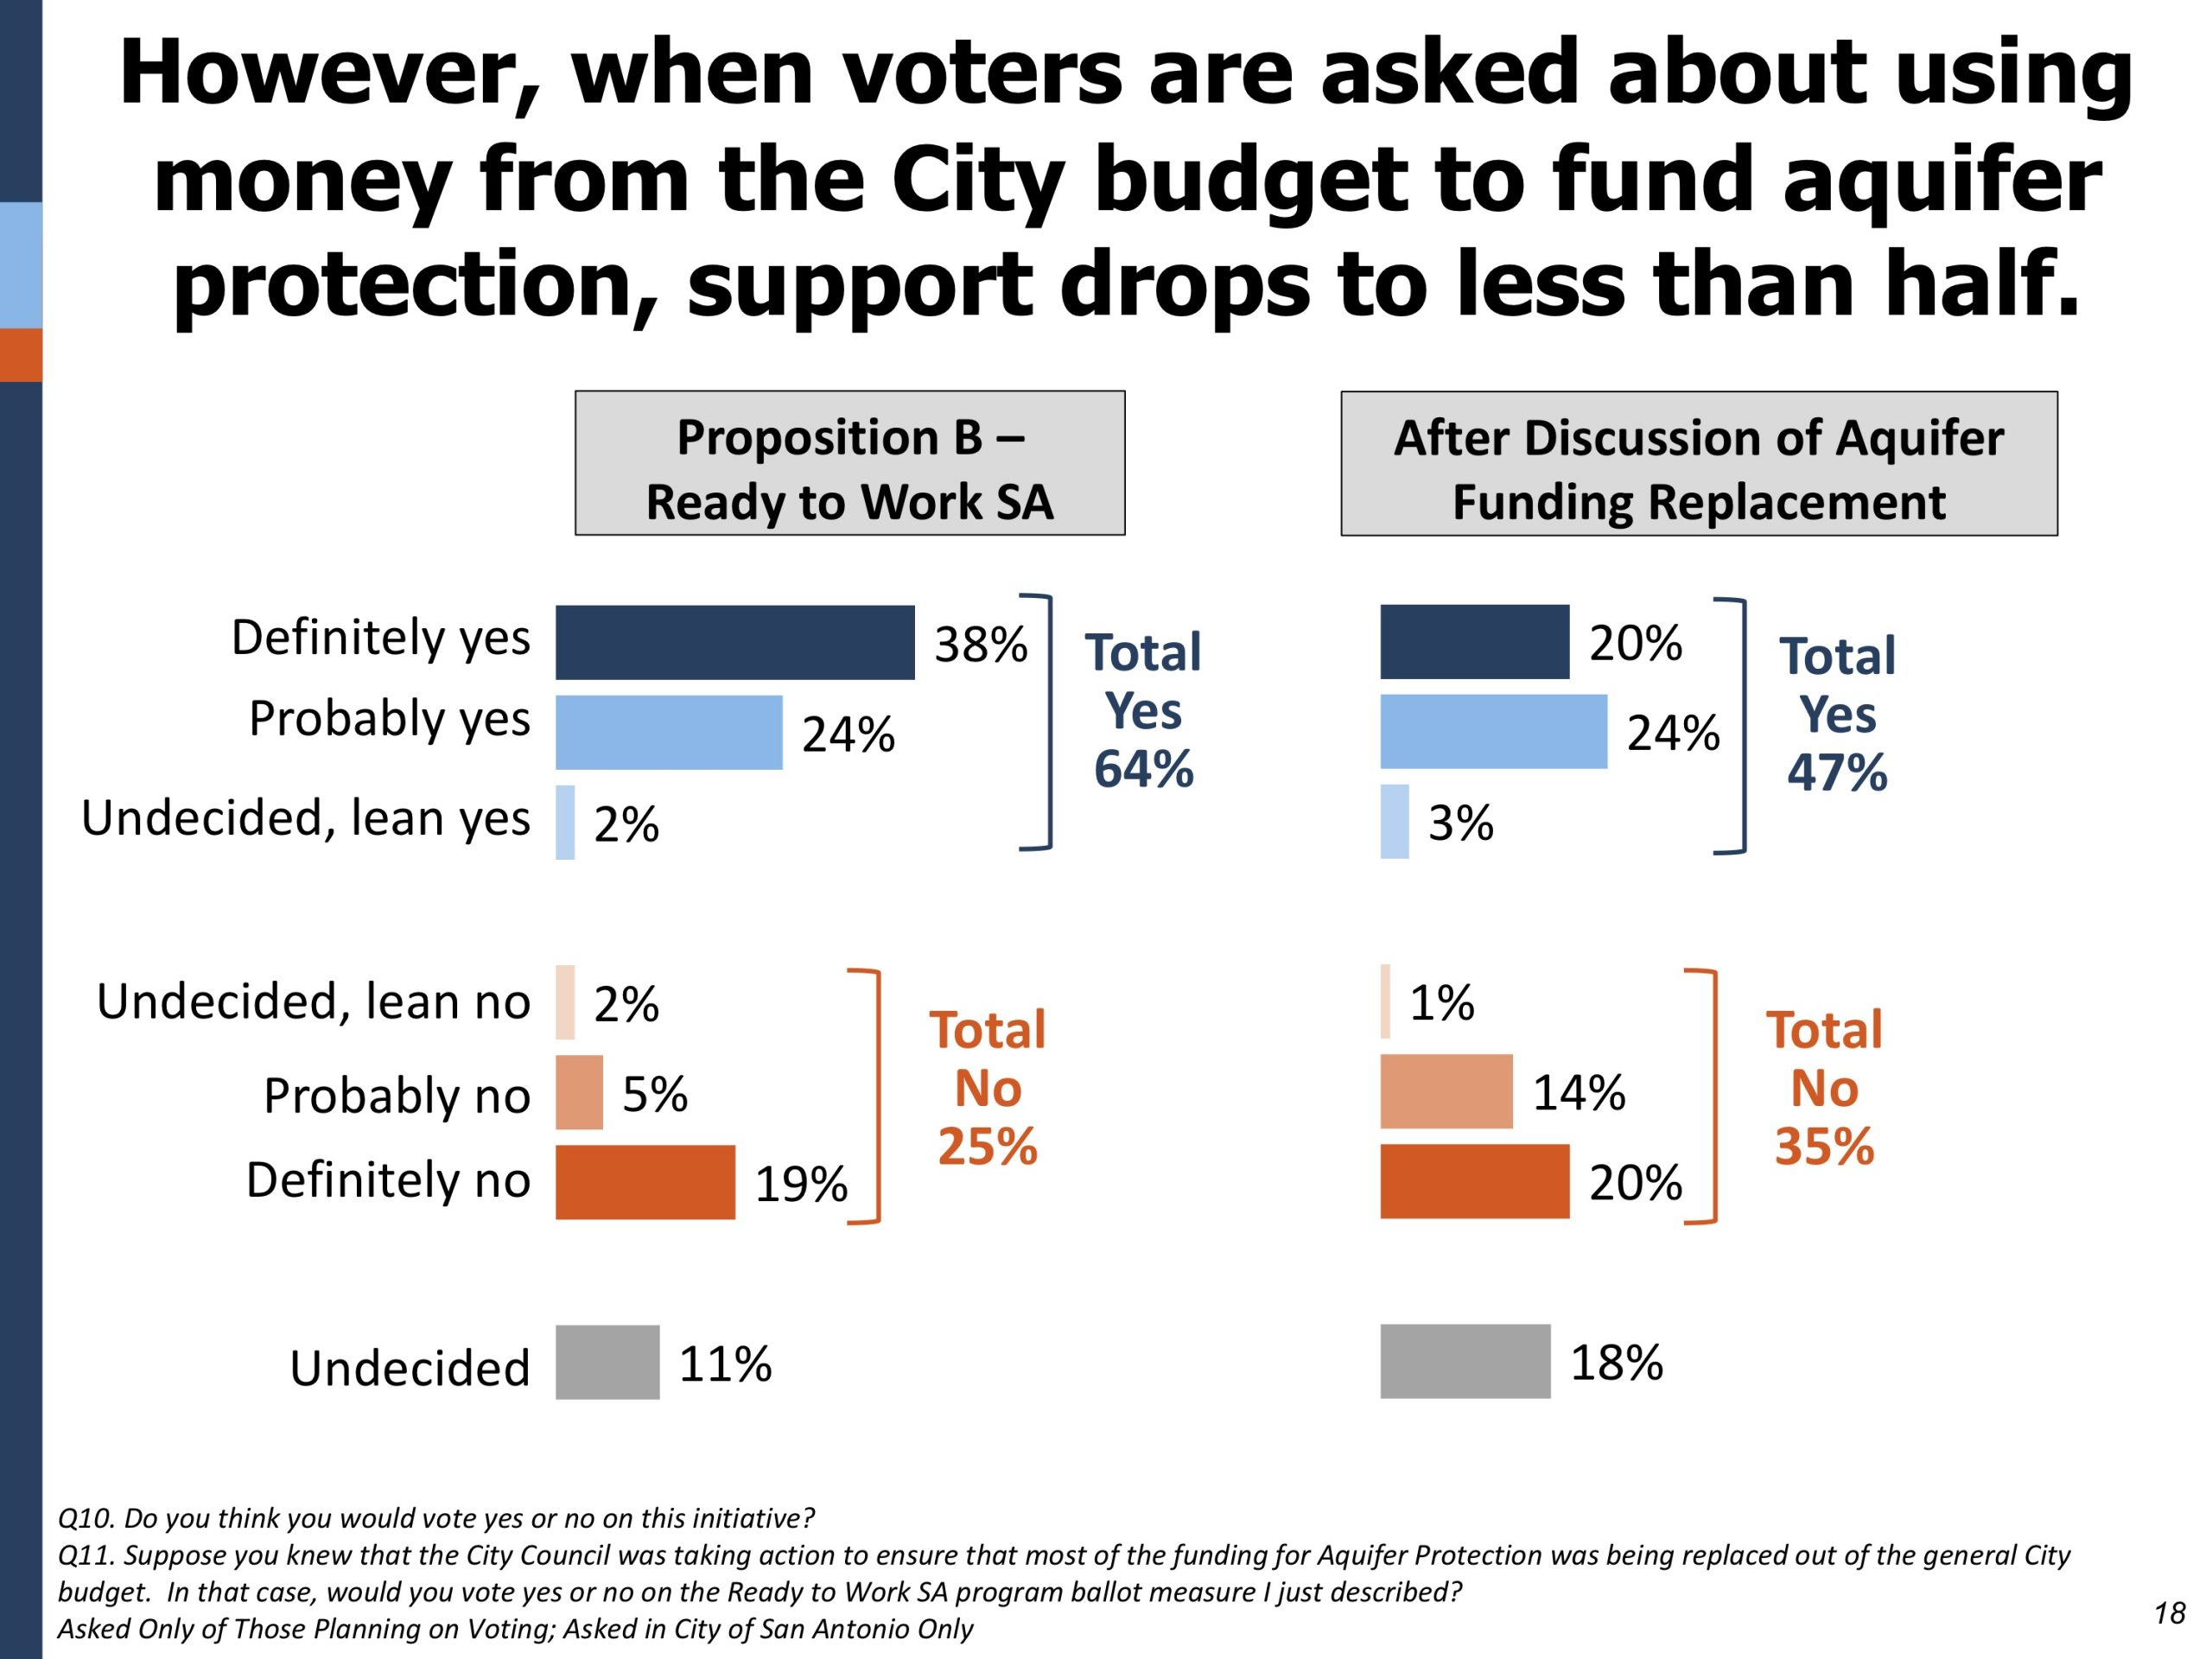 This graphic shows support for workforce development initiative drop after discussion of aquifer funding replacement.